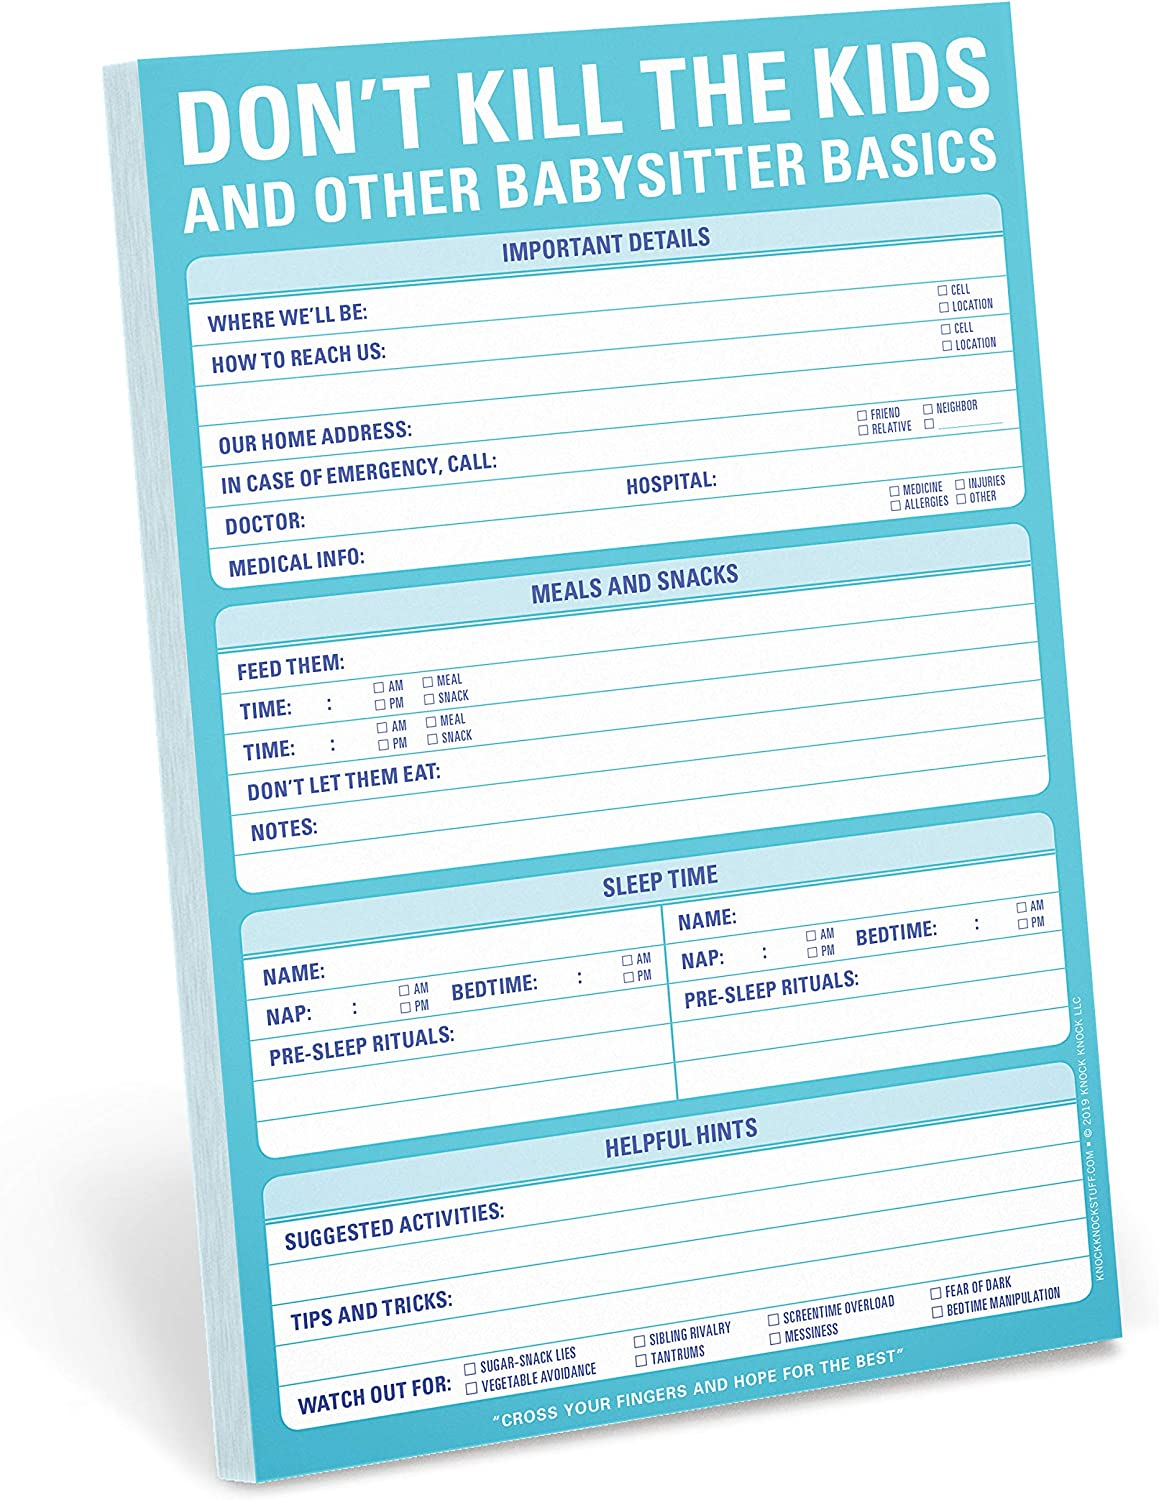 Knock Knock Don't Kill the Kids Babysitter Checklist Note Pad, 6 x 9-inches